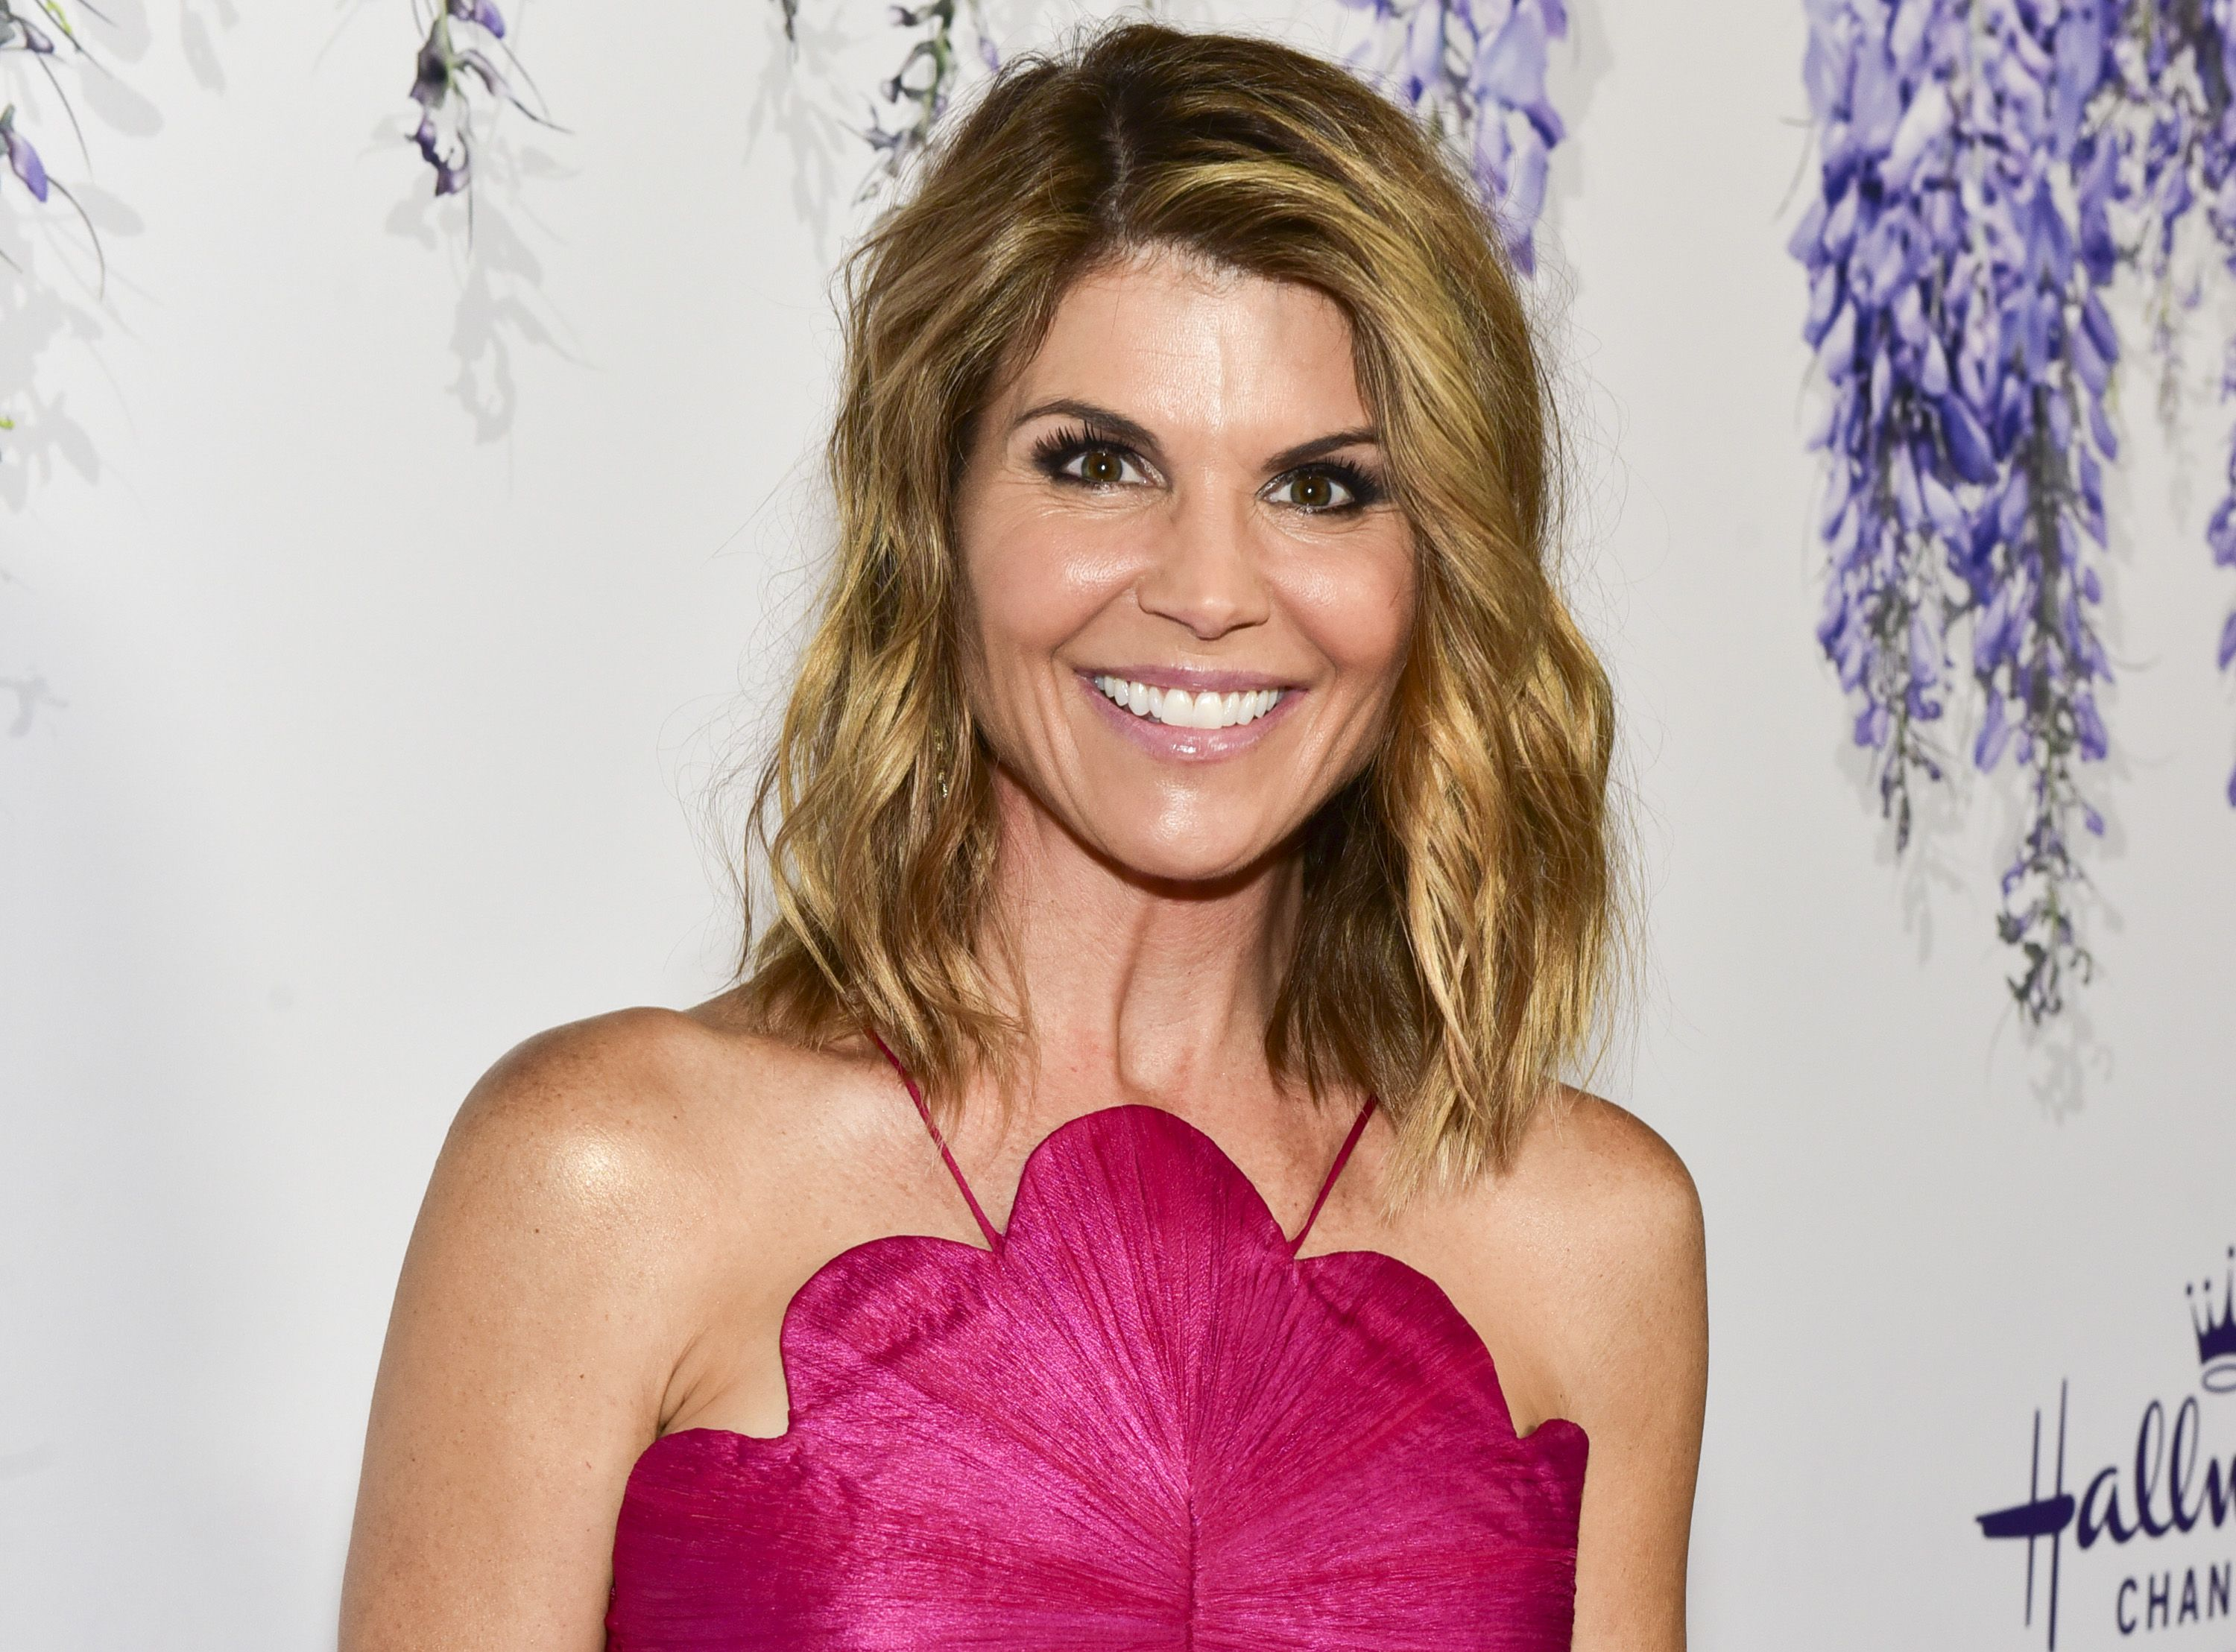 Lori Loughlin at the 2018 Hallmark Channel Summer TCA at a private residence on July 26, 2018 | Photo: Getty Images